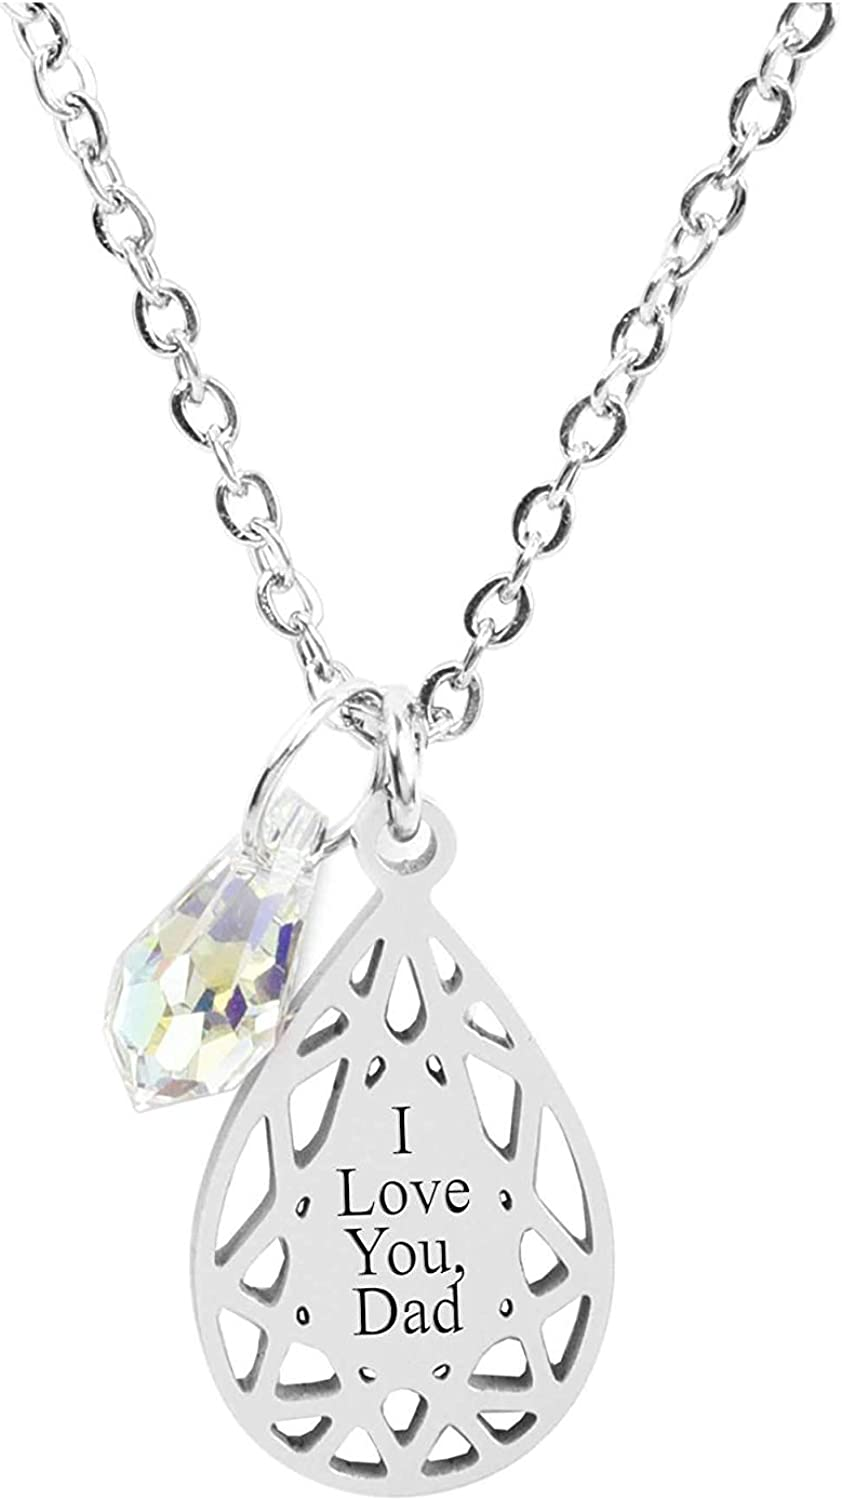 Silver Pink Box Symmetrical Tear Drop Necklace Made with Crytals from Swarovski Dad Love You